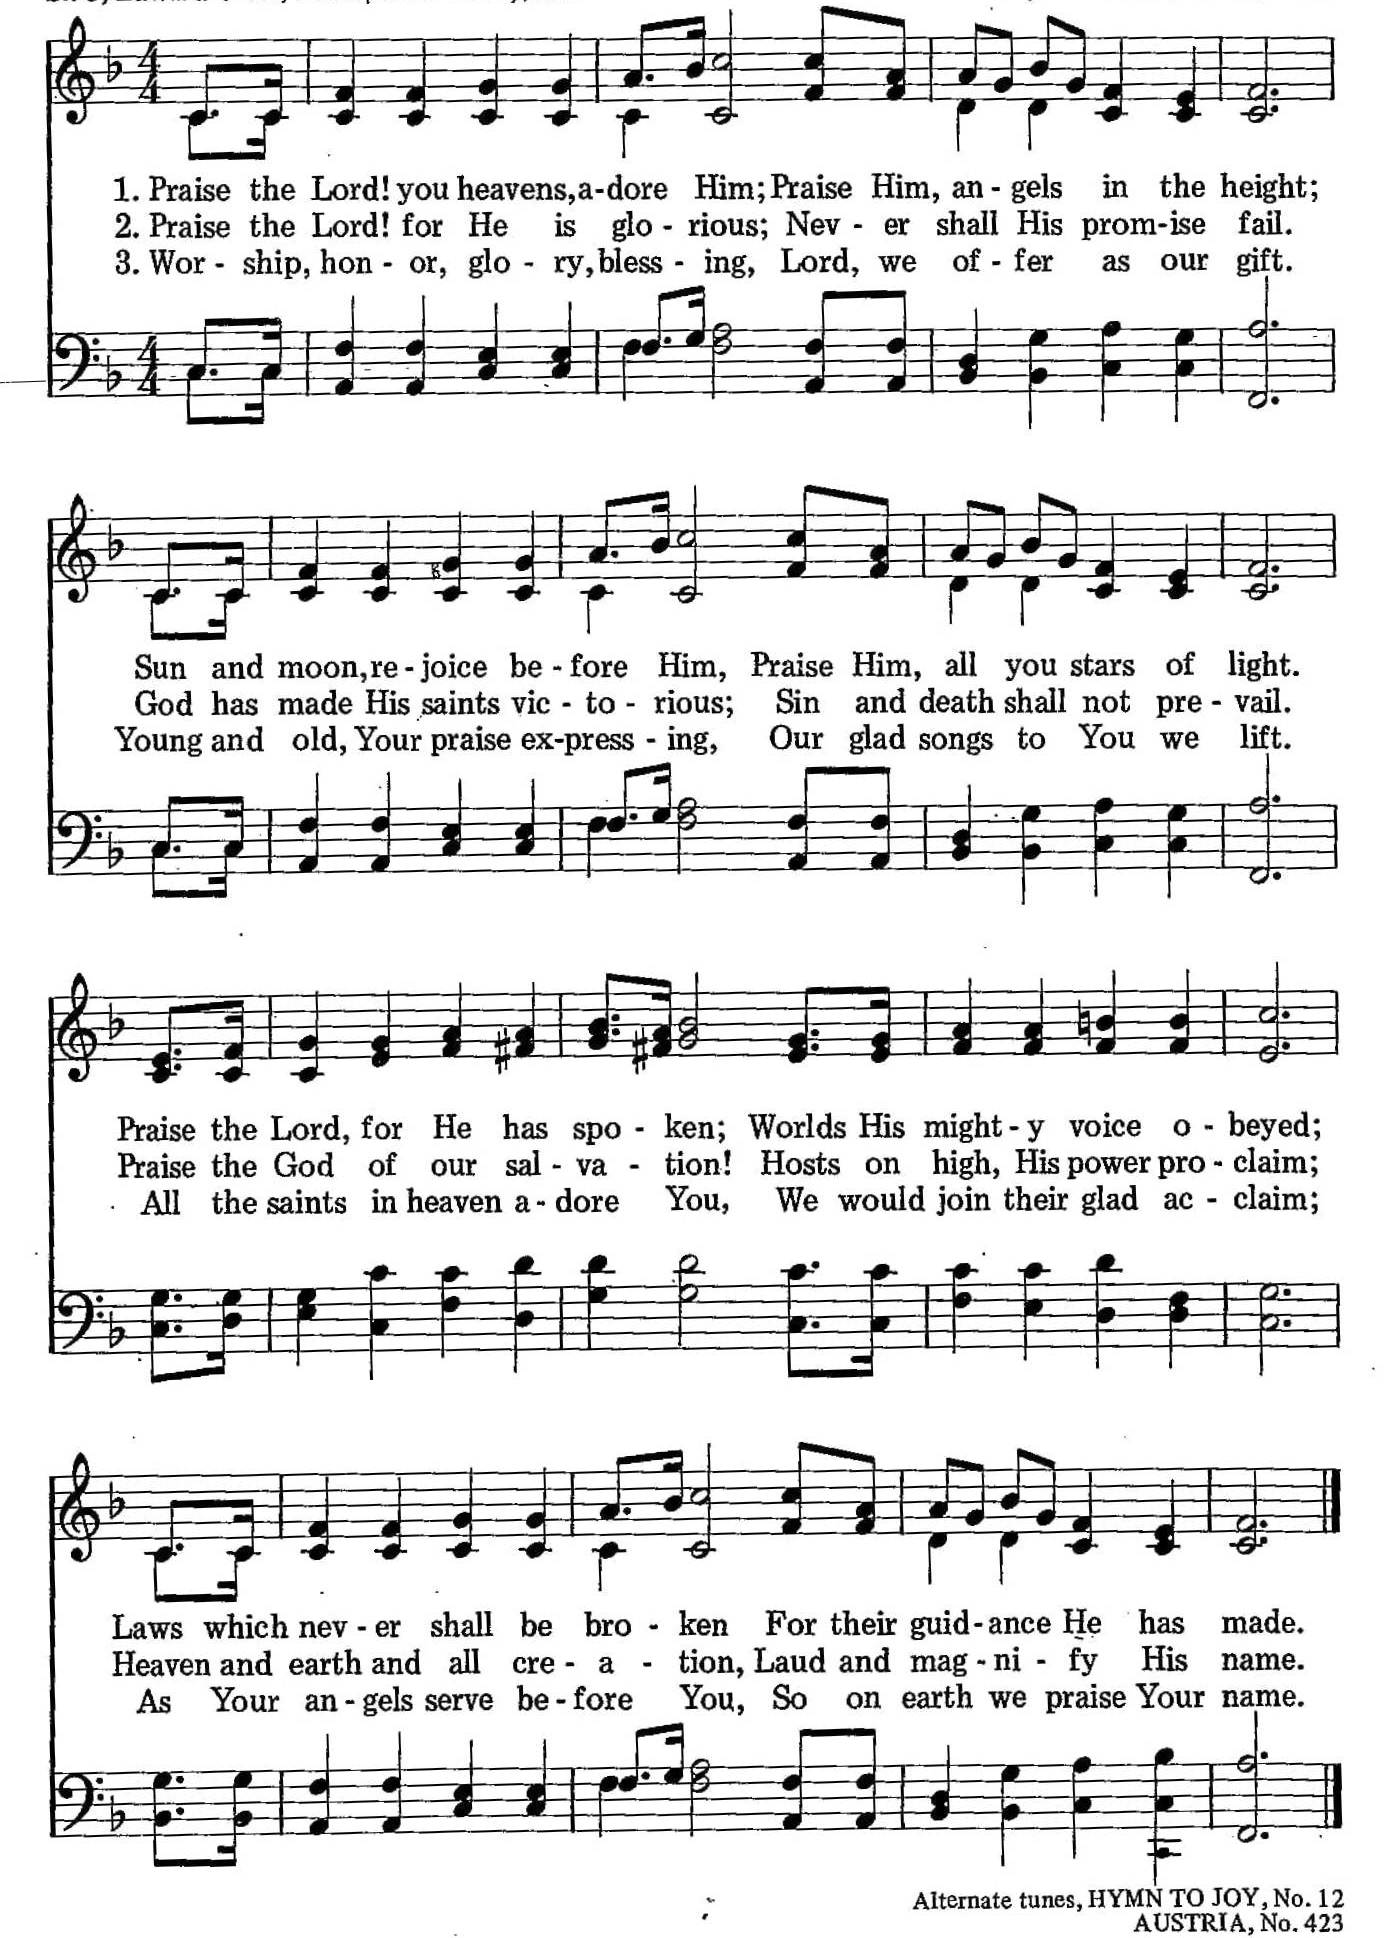 026 – Praise the Lord! You Heavens Adore Him sheet music